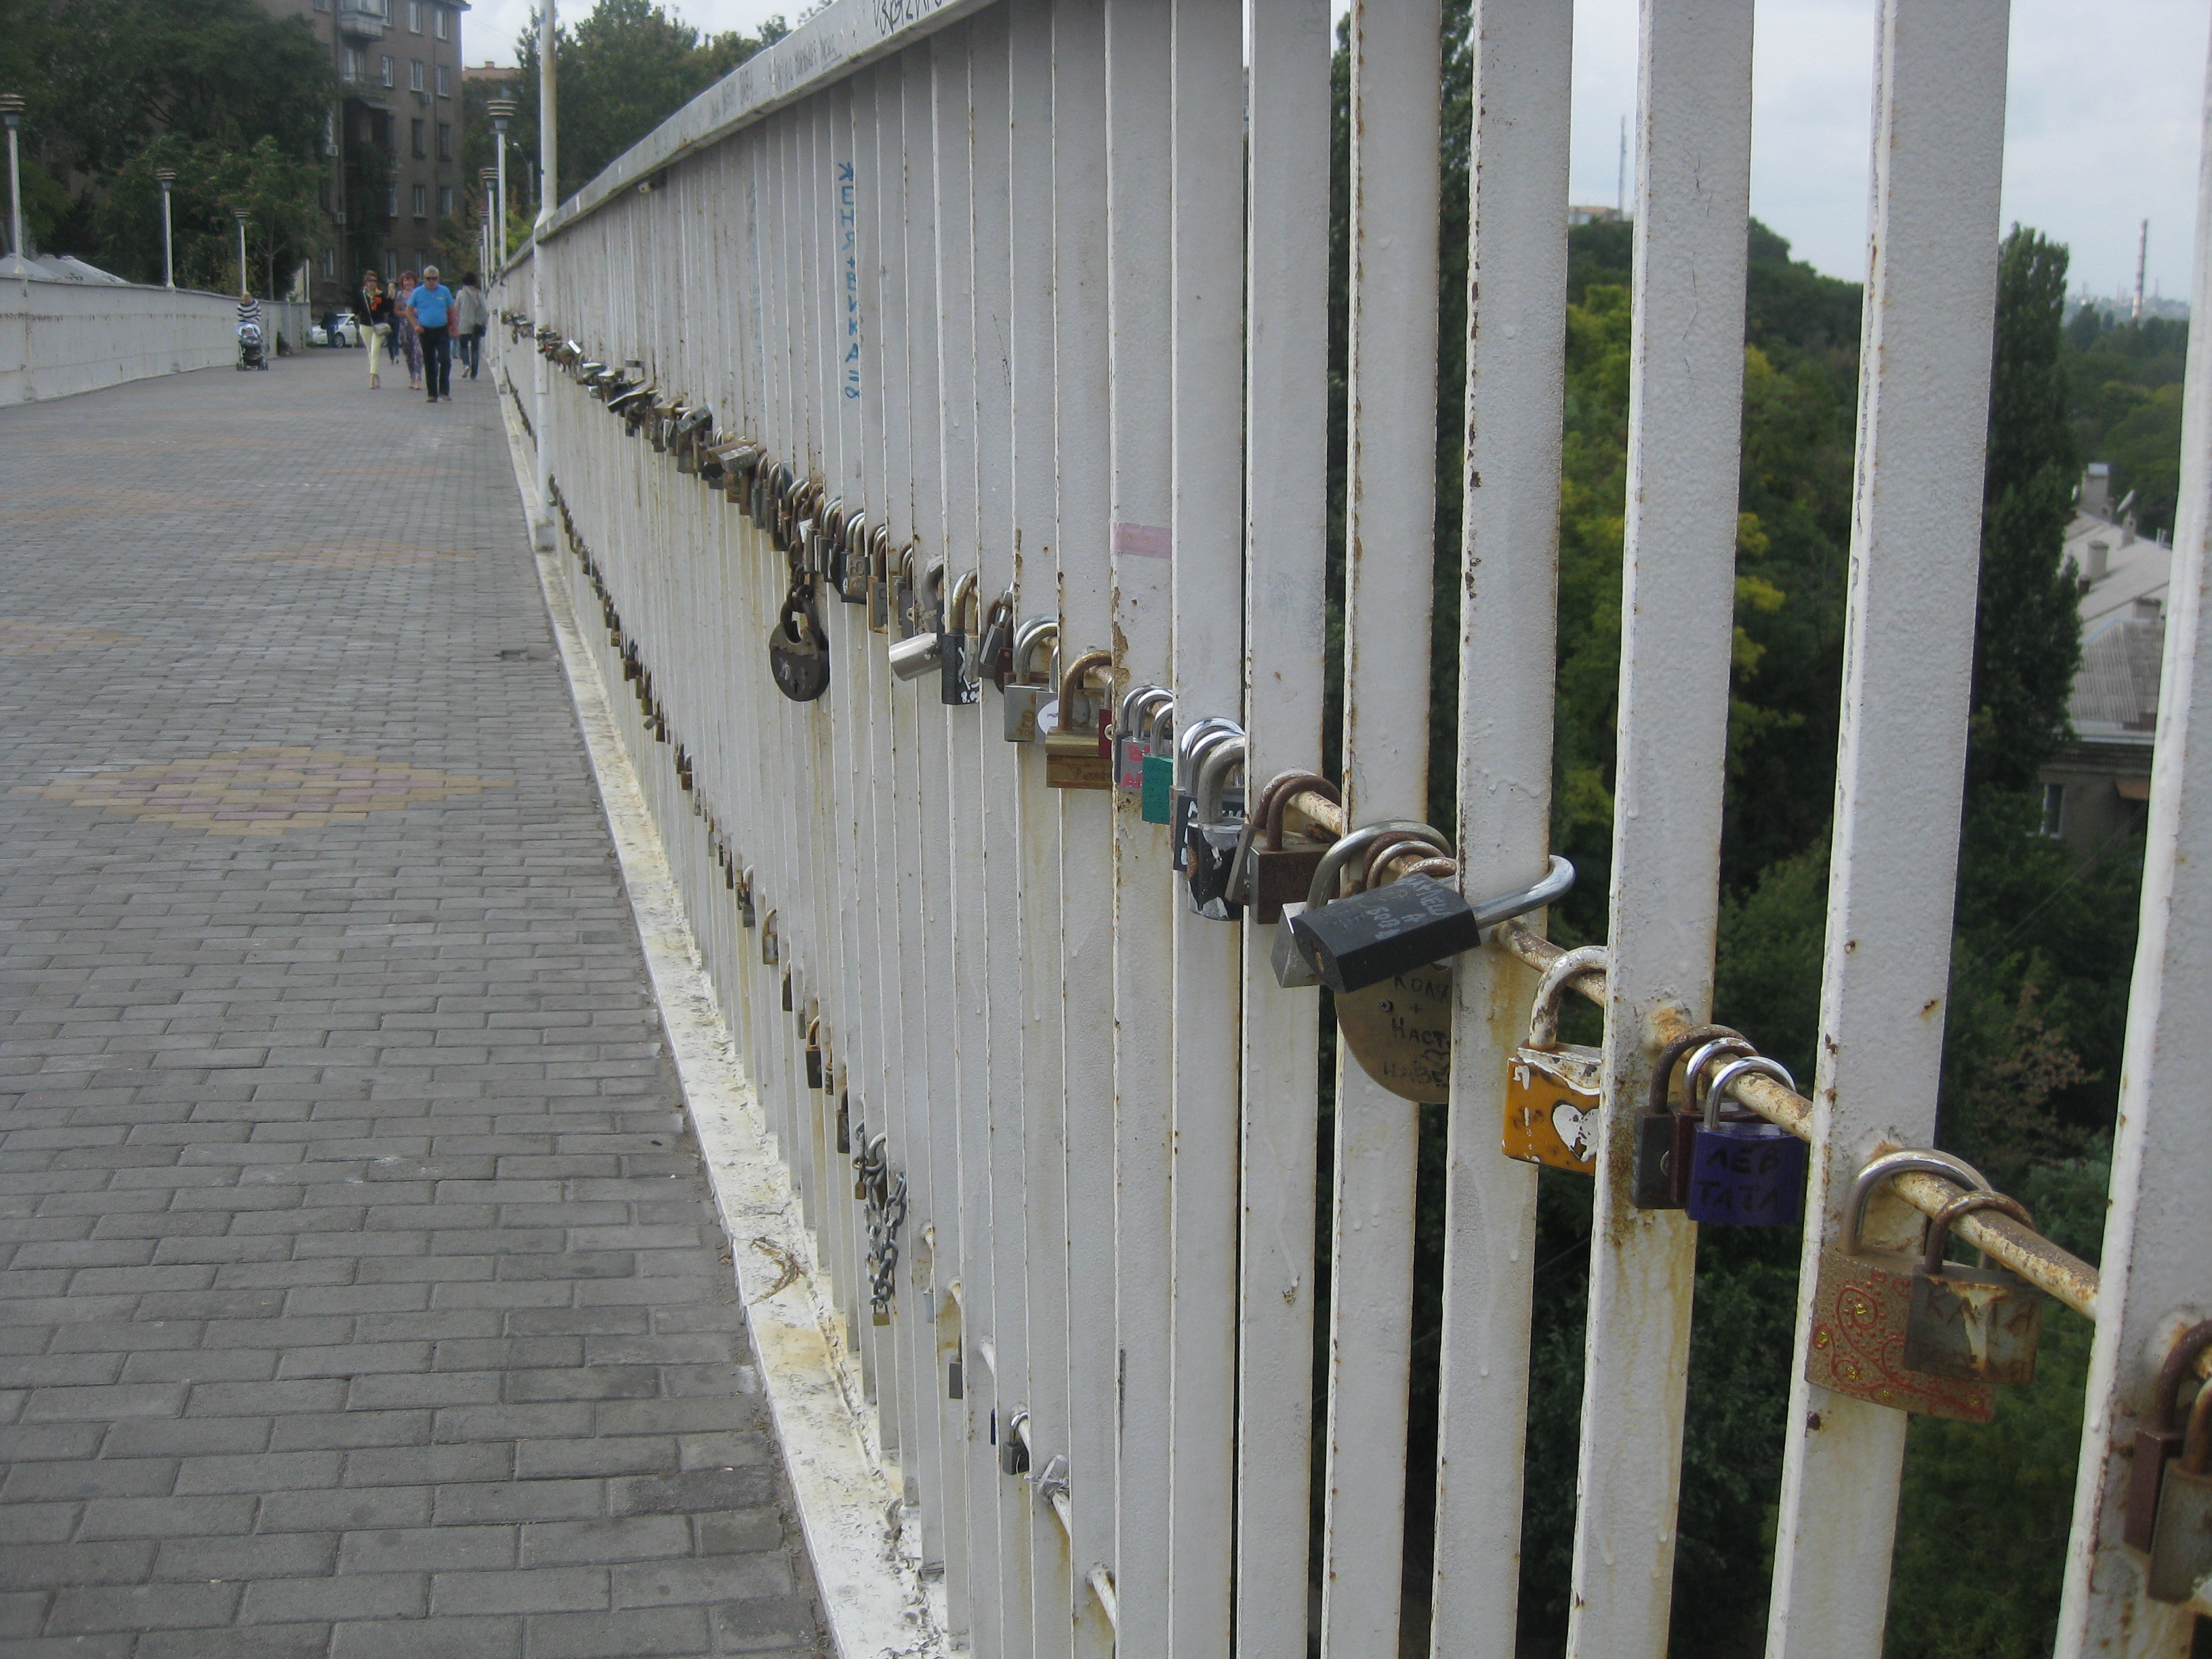 Locks on rails of mother-in-law's bridge.